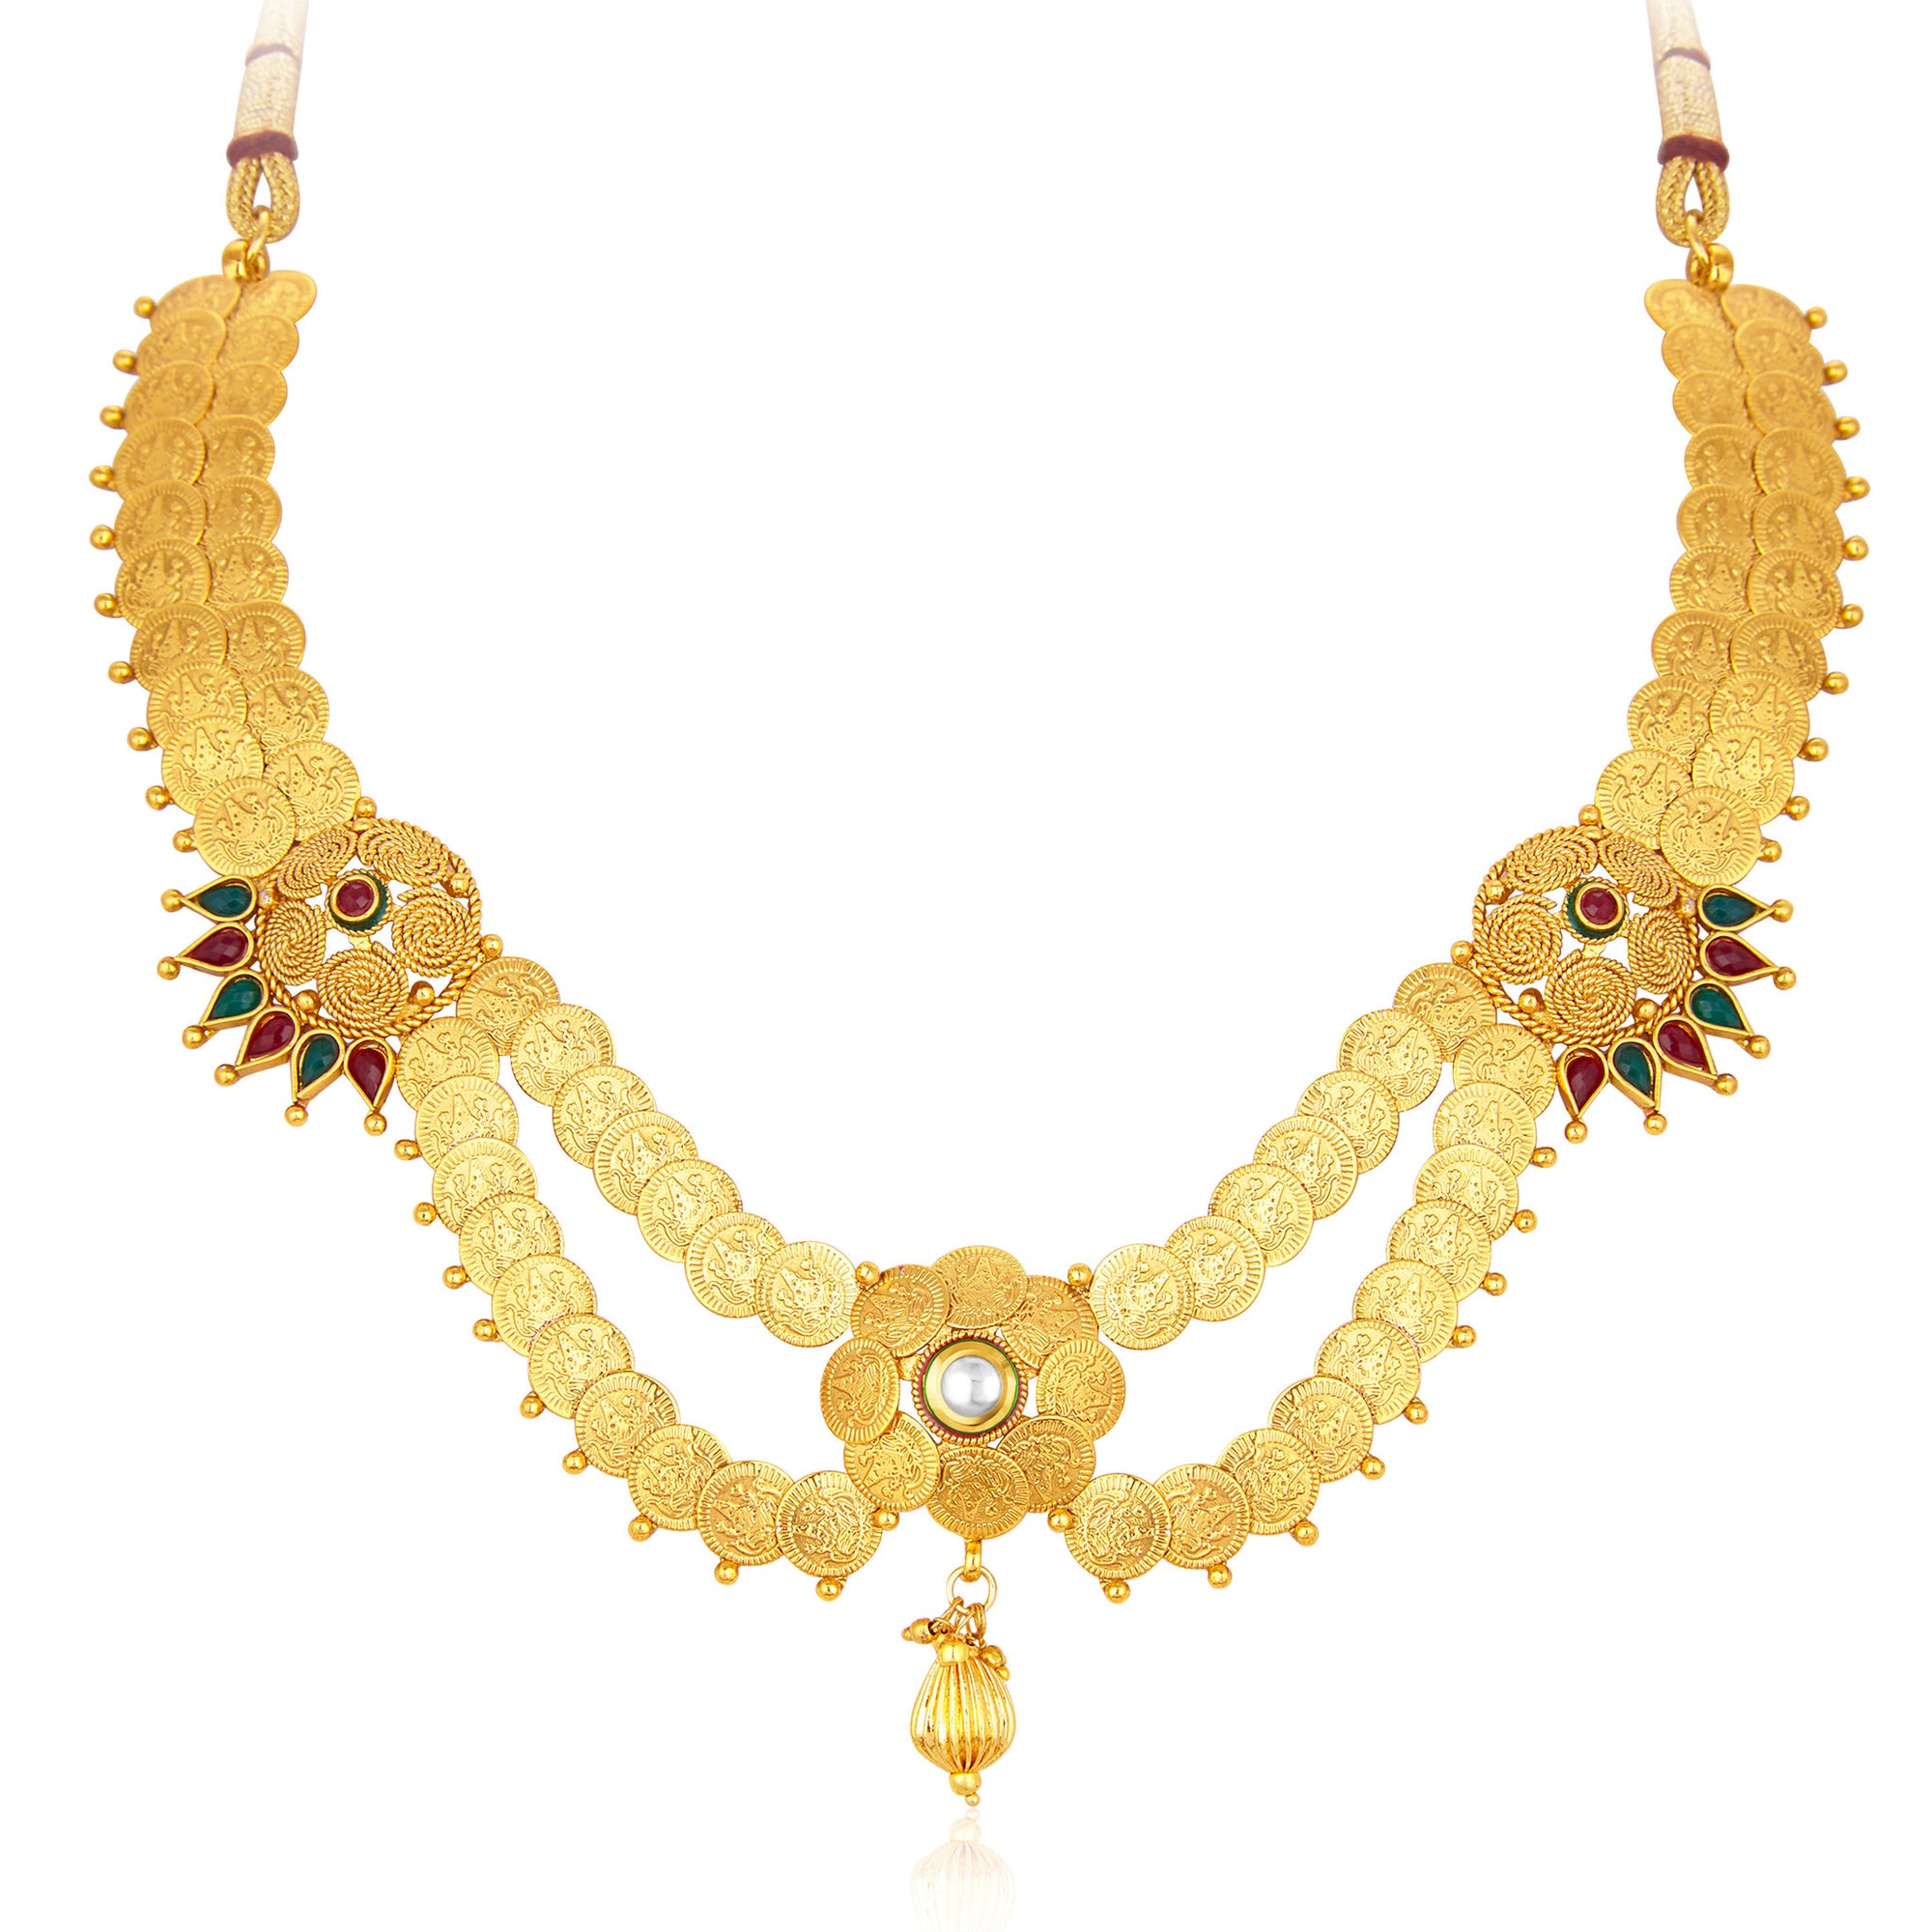 dd37476570d91 Sukkhi Beguiling Laxmiji Coin Temple Jewellery Gold Plated Necklace ...